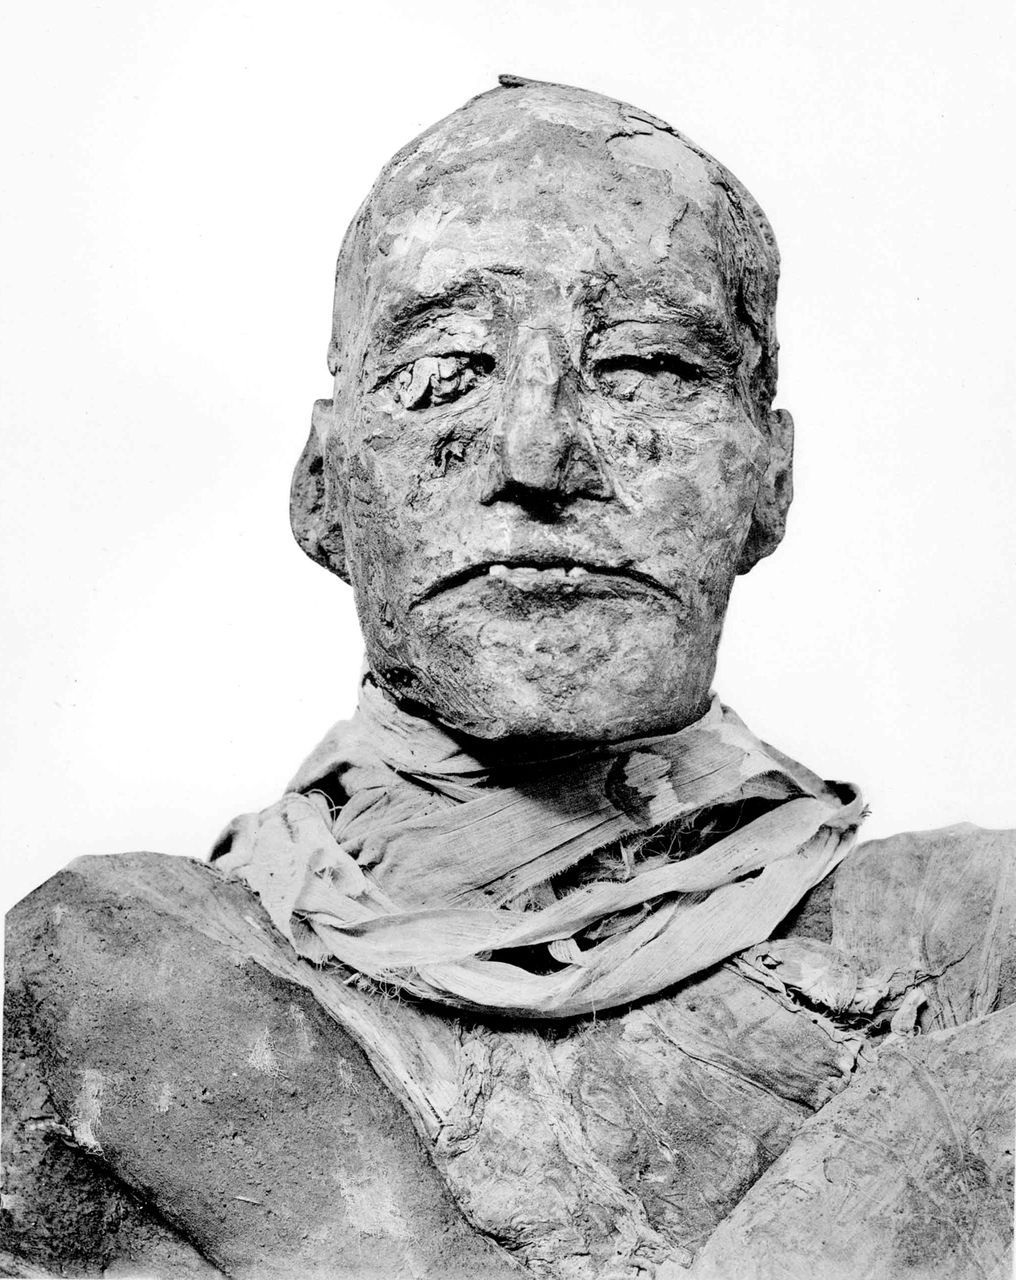 Pharaoh Ramesses III Killed by Multiple Assailants, Radiologist Says